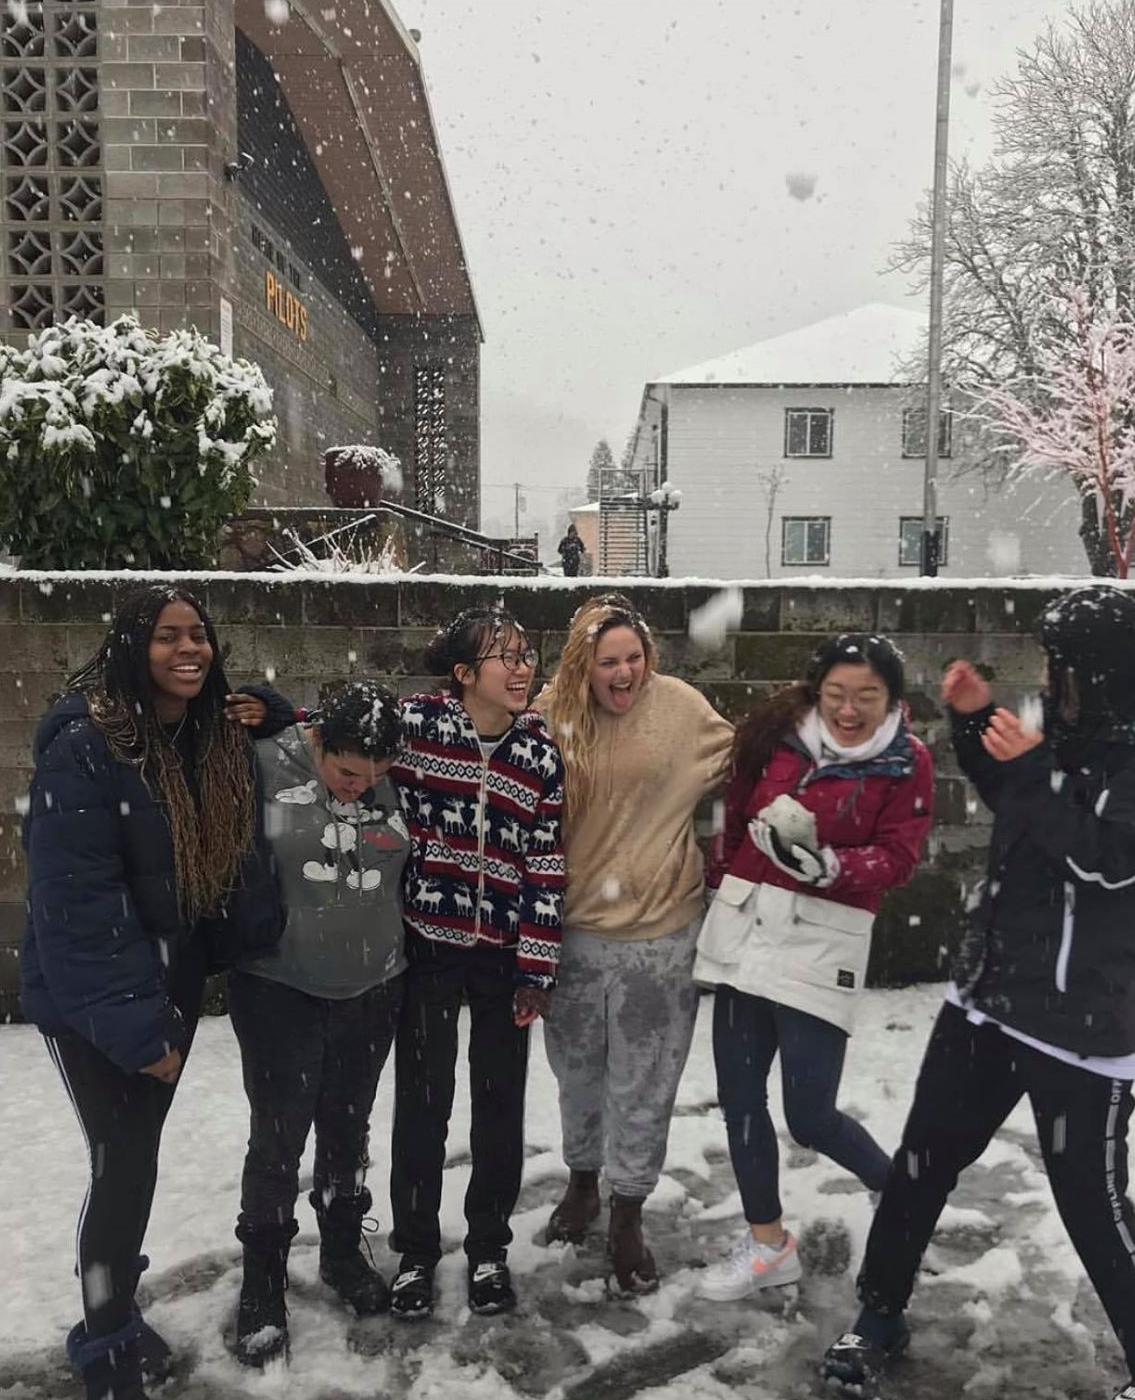 Even without power during the snowstorm, the students had fun!